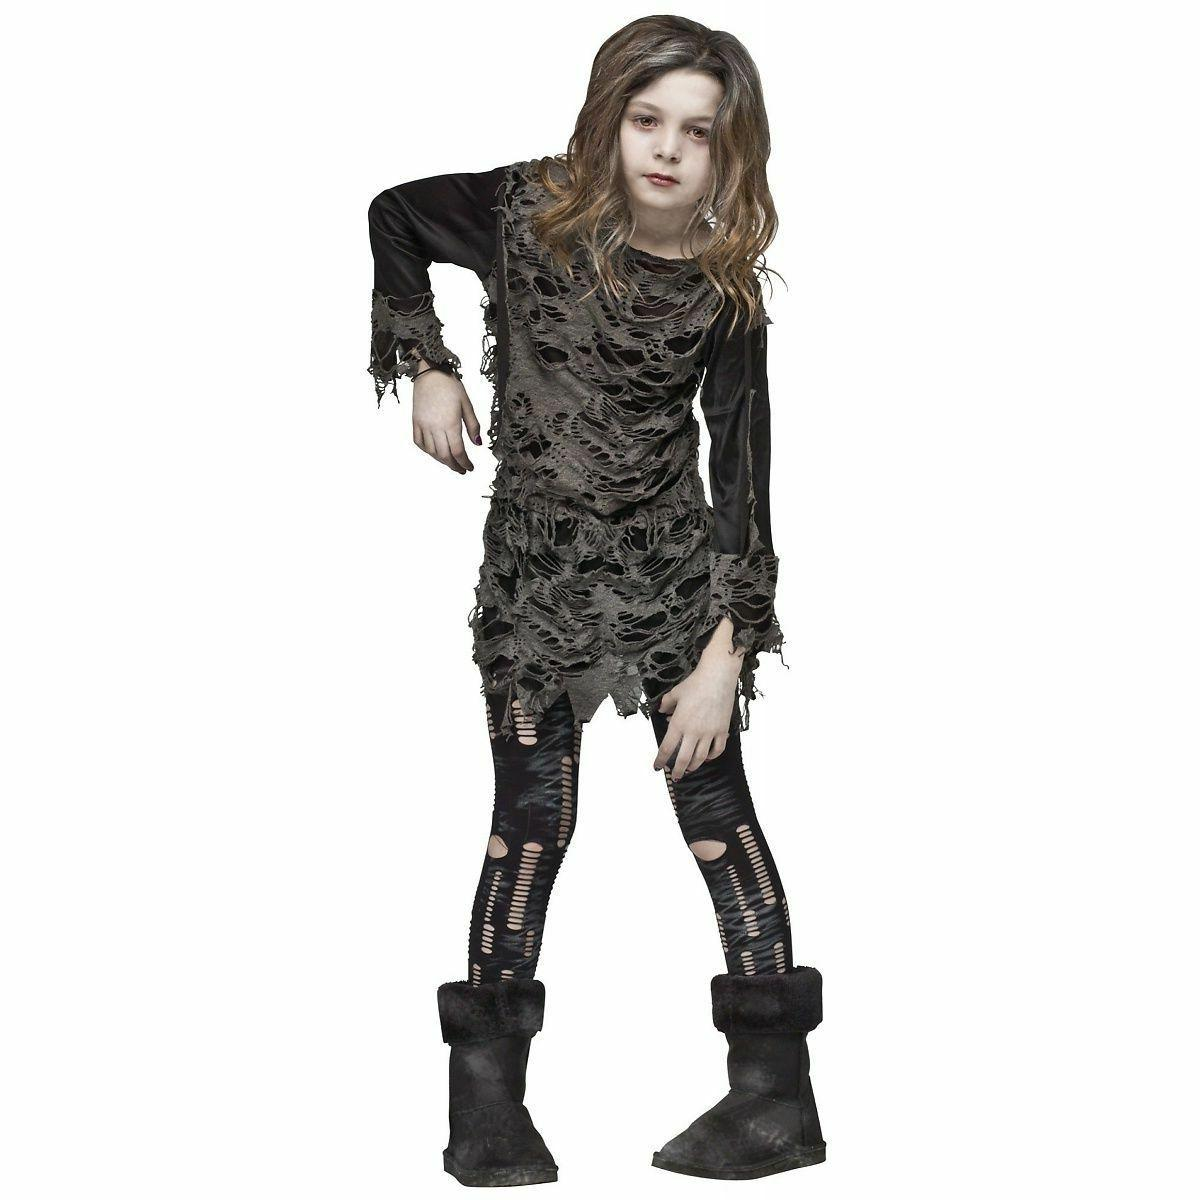 walking zombie costume for girls size 8